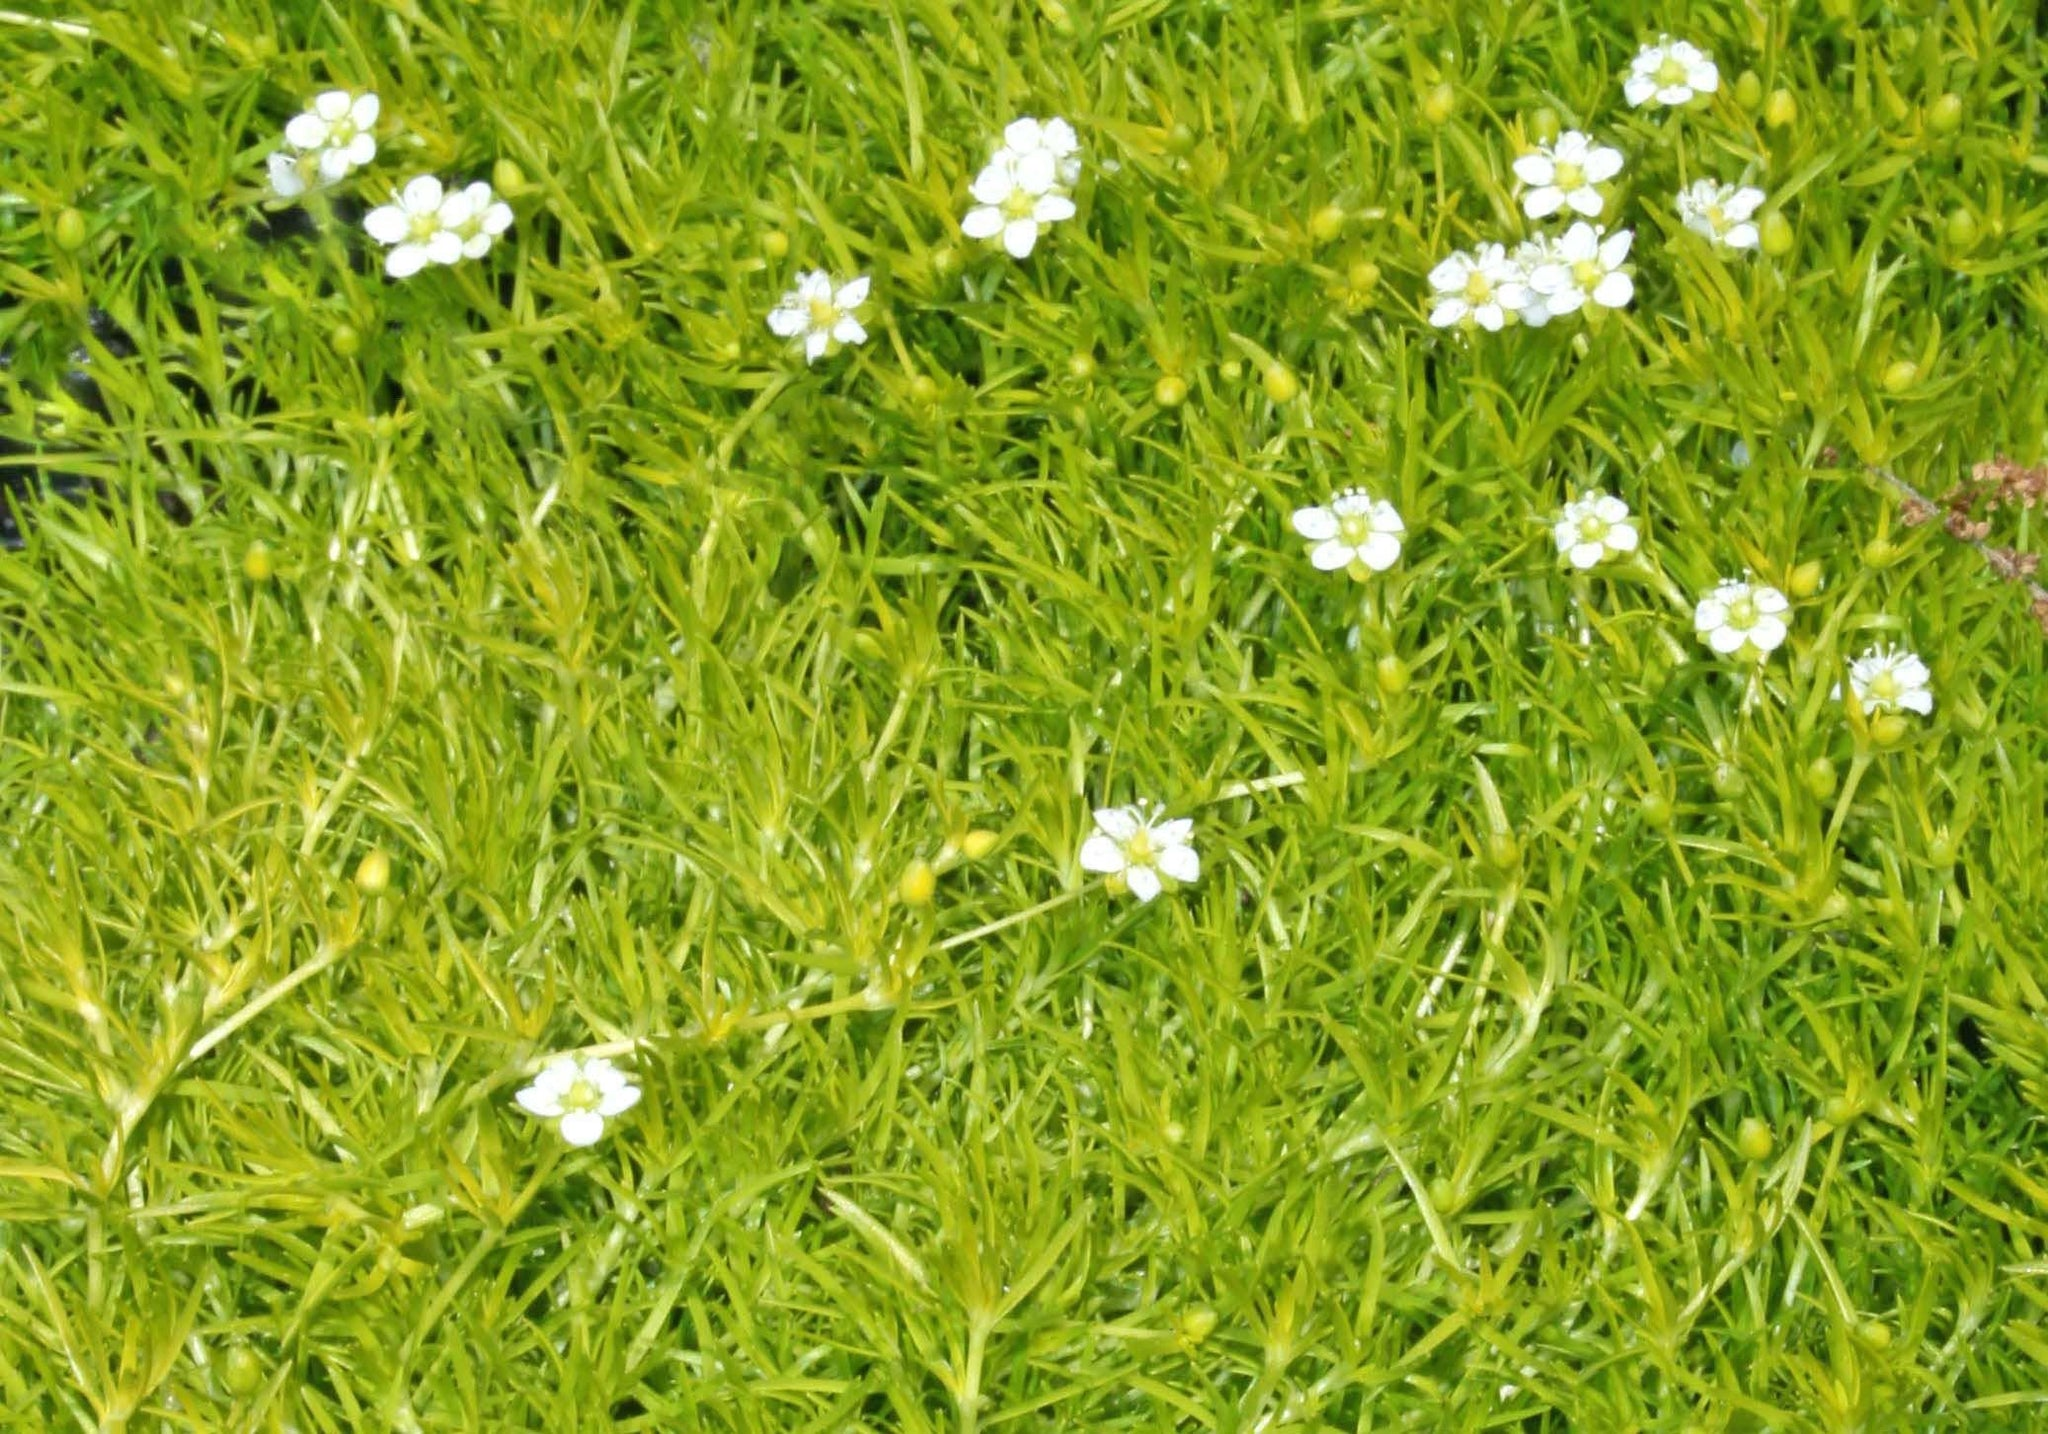 "(10 count flat 4.5"" pots) Sagina subulata 'Aurea' Scotch Moss, (GROUND COVER), Low moss-like carpet of bright neon-yellow foliage, tiny white flowers spring-summer, does not like drought or wet soil. , PIXIESDS_EGN"